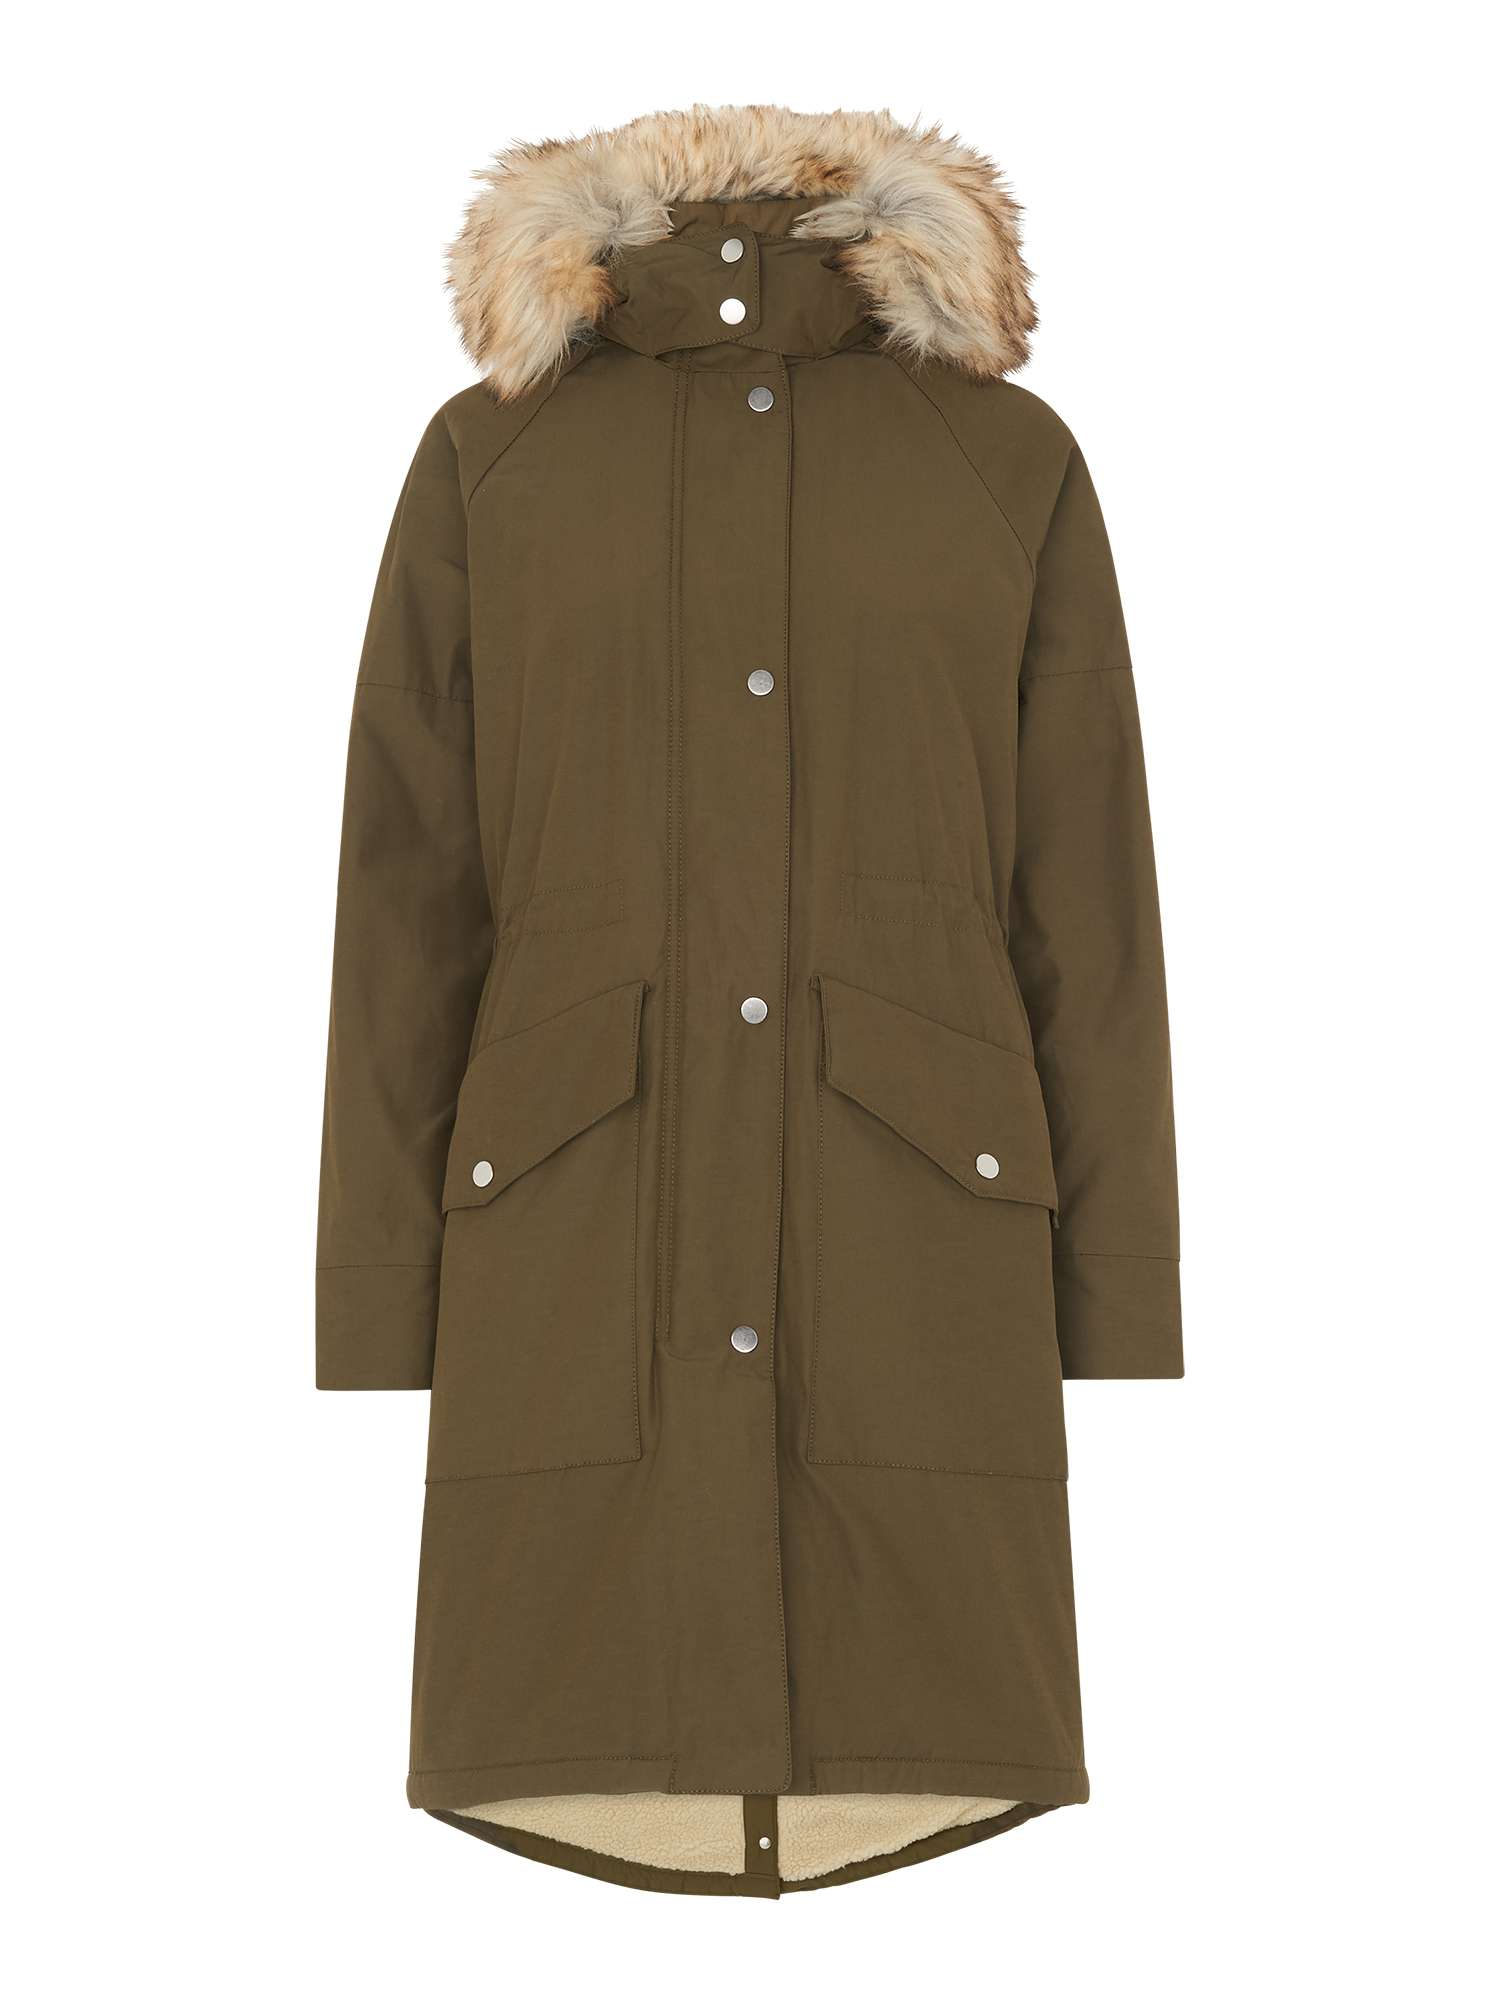 Casual Casual Coat Whistles Whistles Casual Megan Megan Whistles Coat Megan Whistles Coat qwRTX6wr